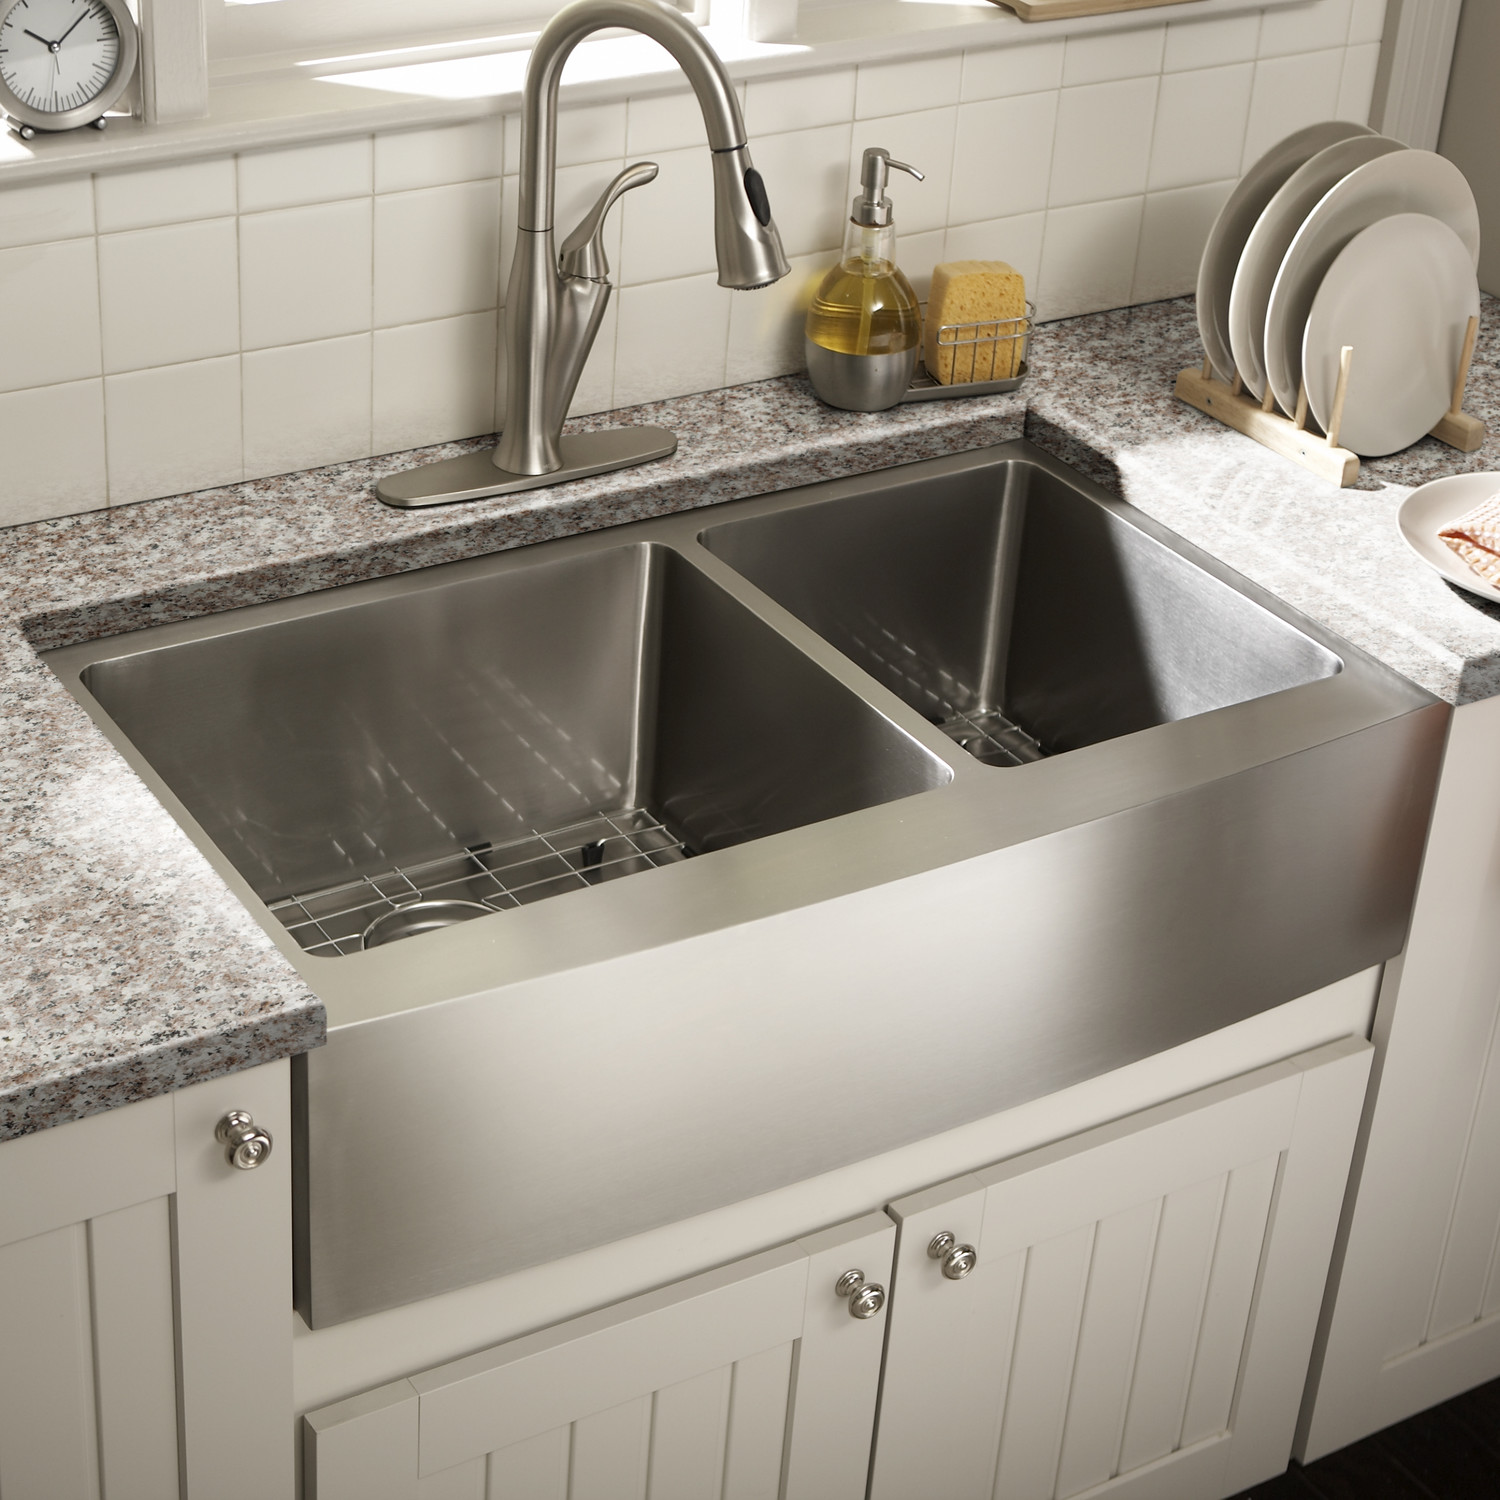 modern farmhouse kitchen sink ideas your home farm kitchen sink Contemporary Stainless Steel Farmhouse Sink For Modern Home